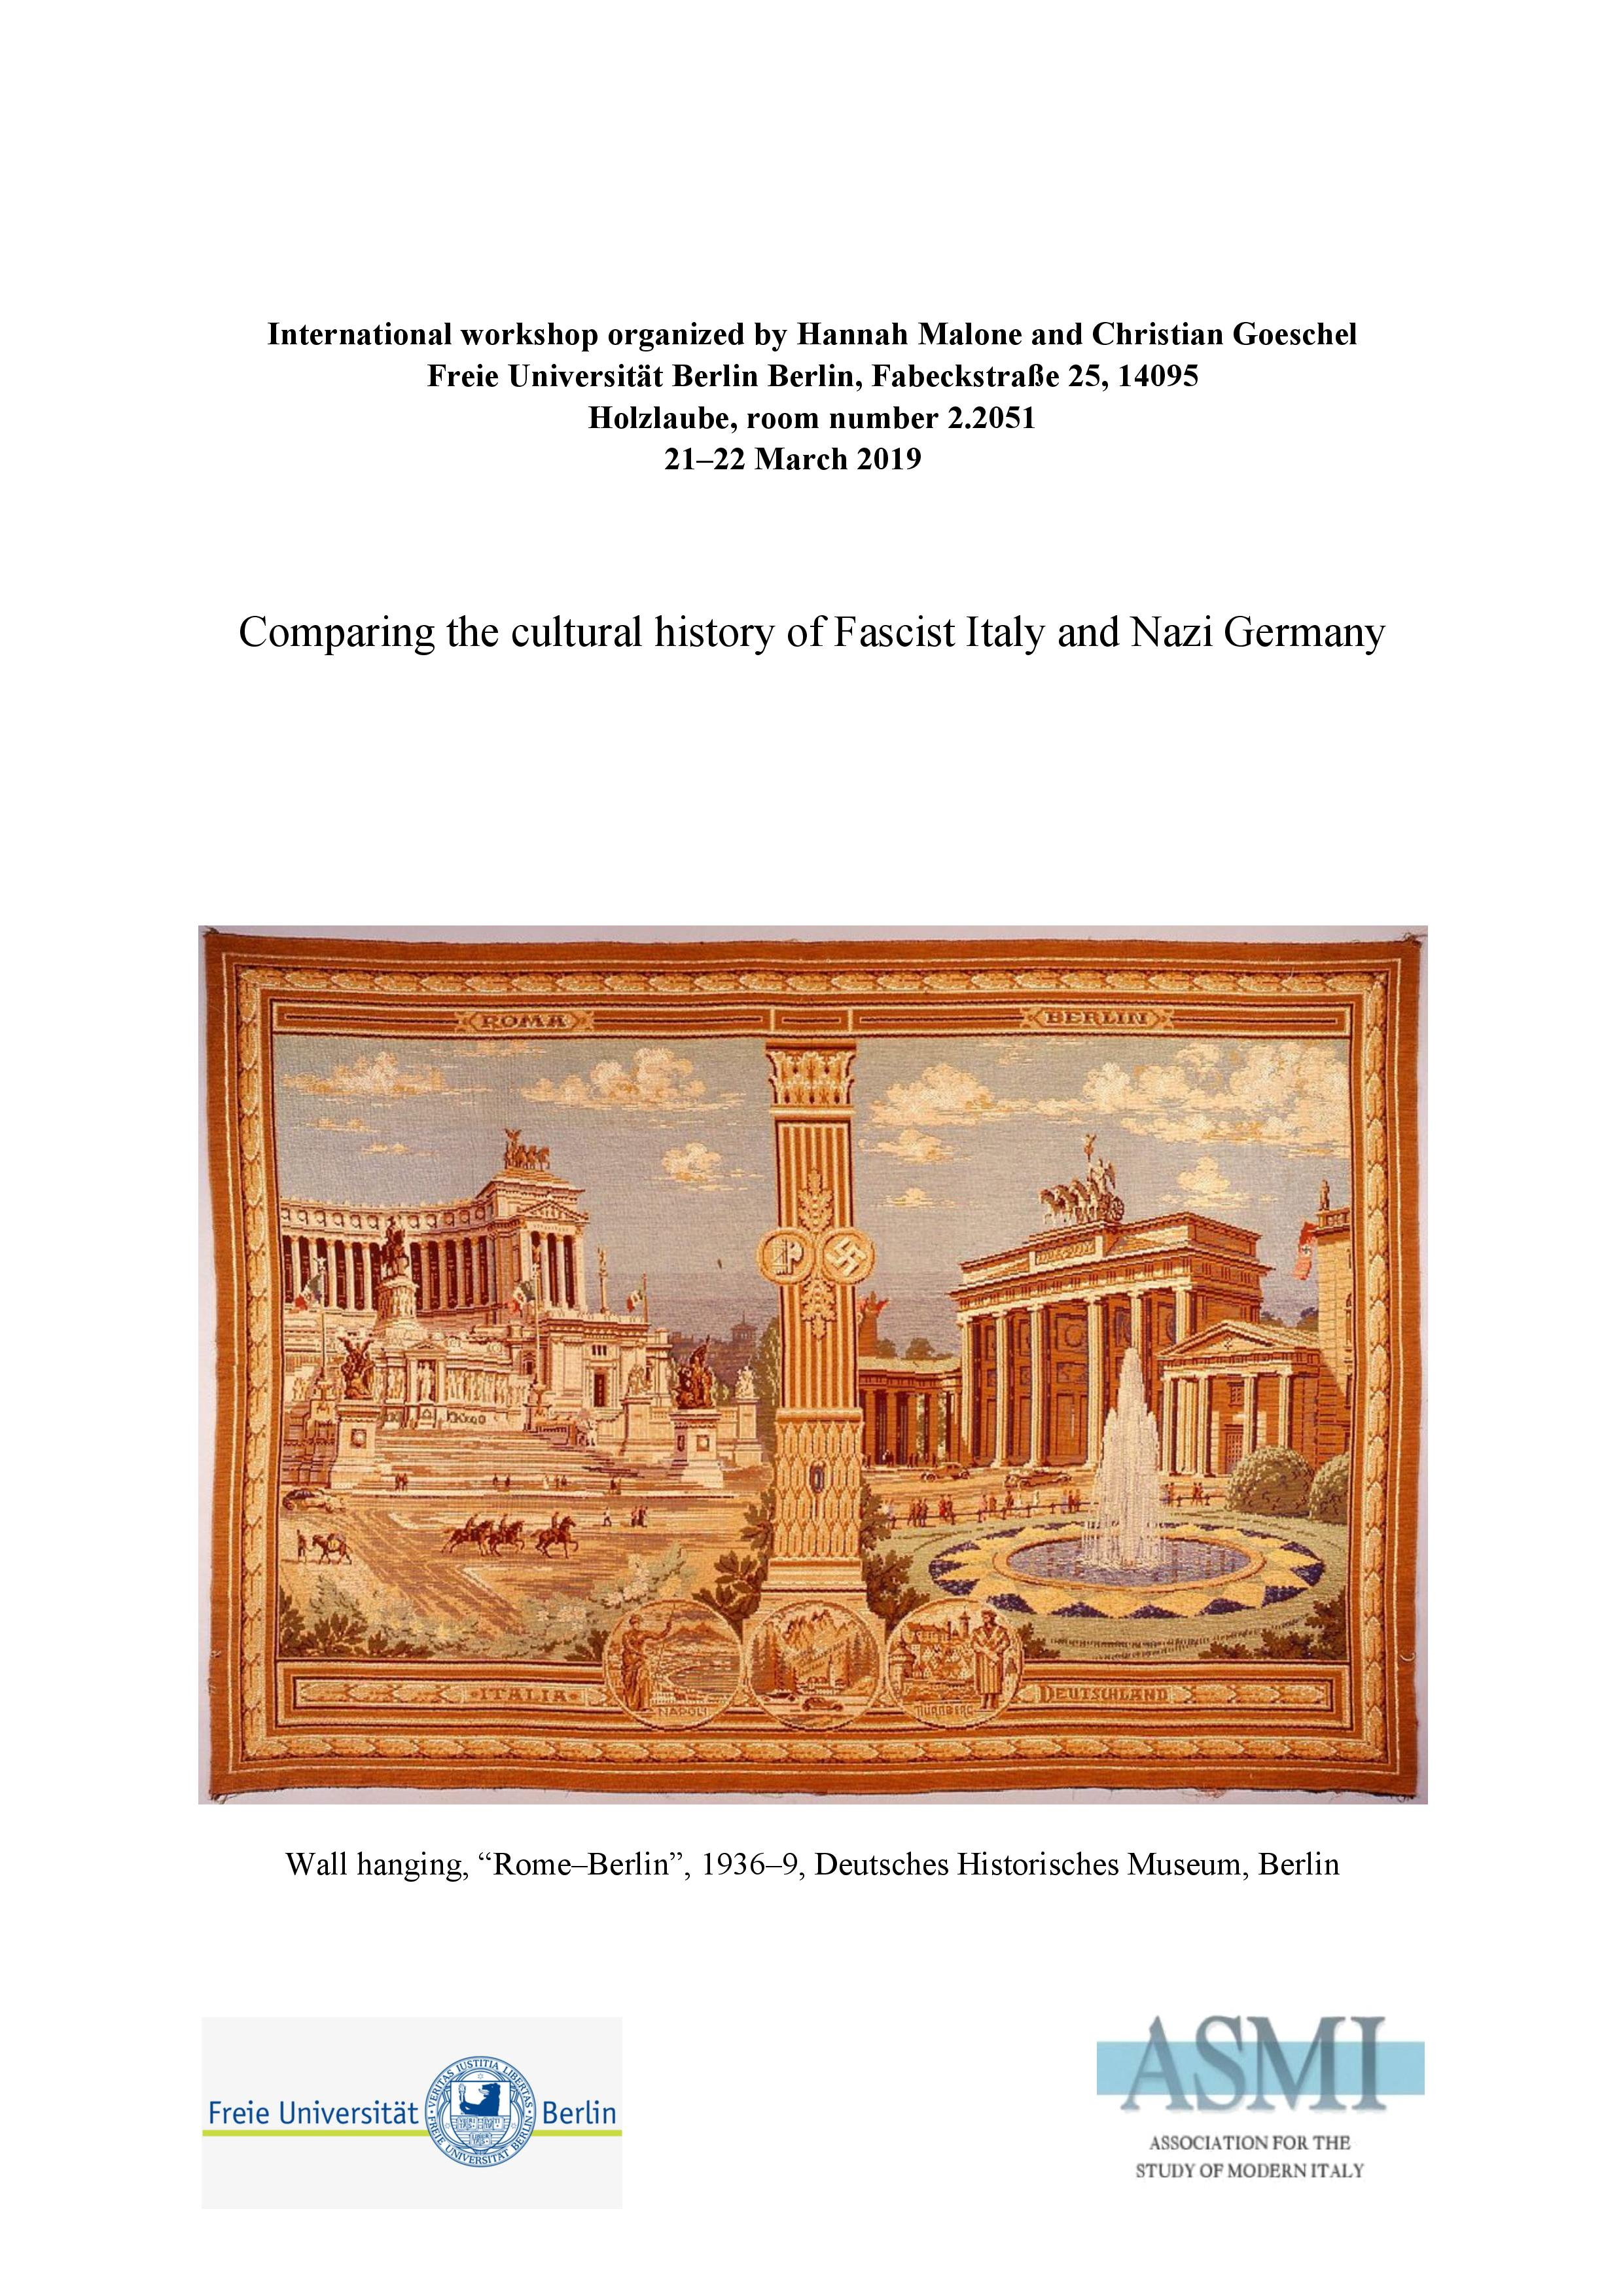 Workshop-programme_Comparing-the-cultural-history-of-Fascist-Italy-and-Nazi-Germany-page-001